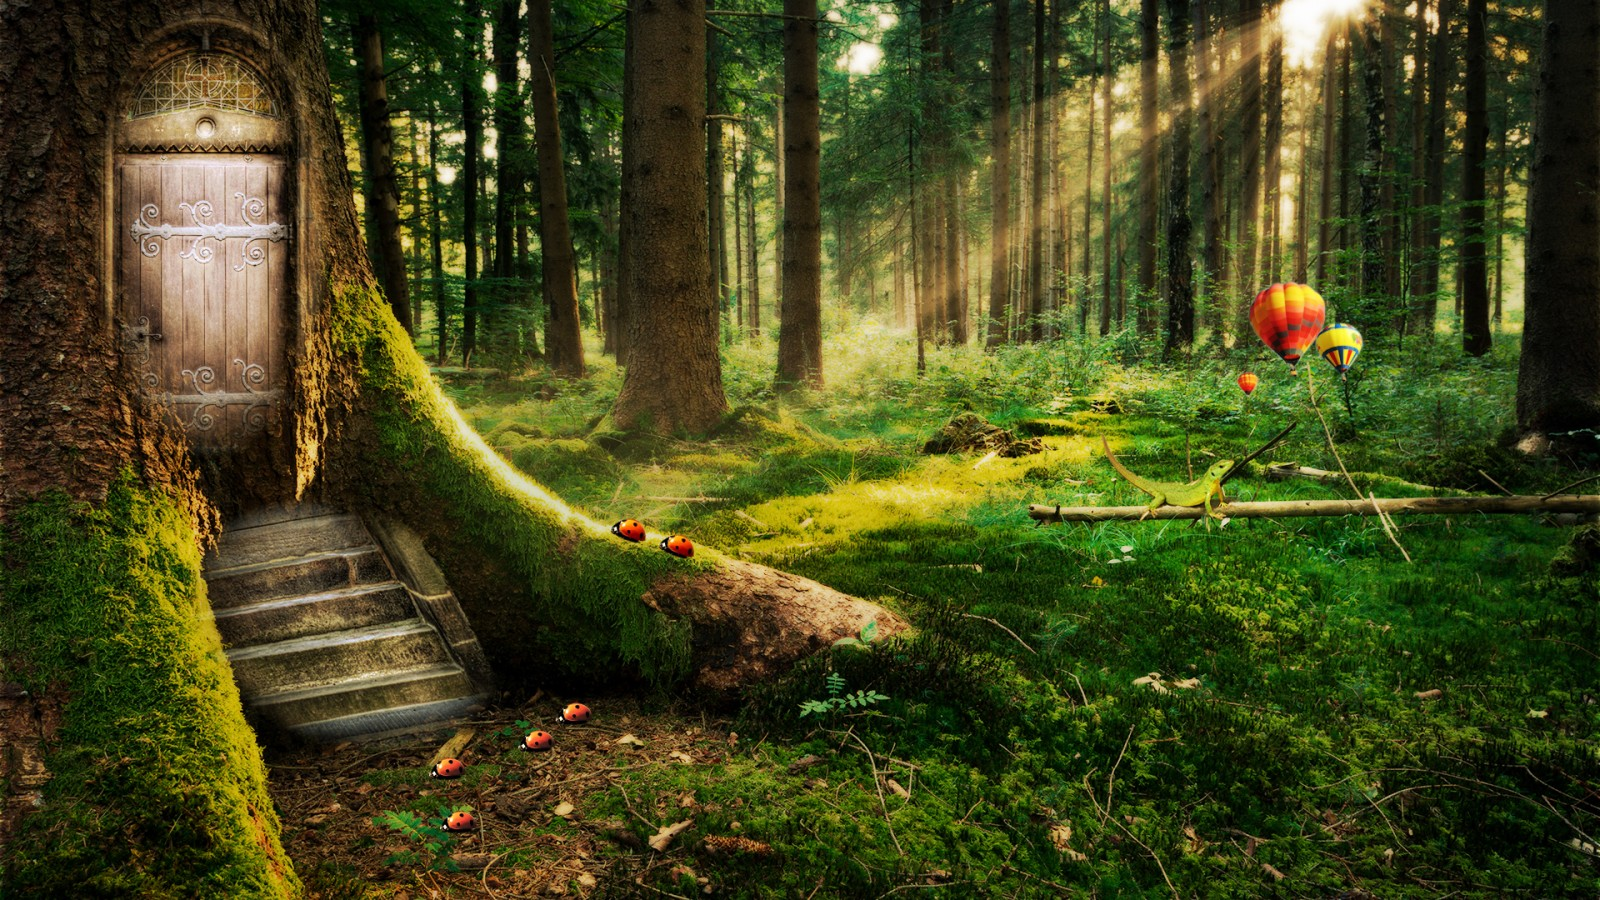 Iphone 5 Hd Space Wallpaper Enchanted Forest Wallpapers Hd Wallpapers Id 11925